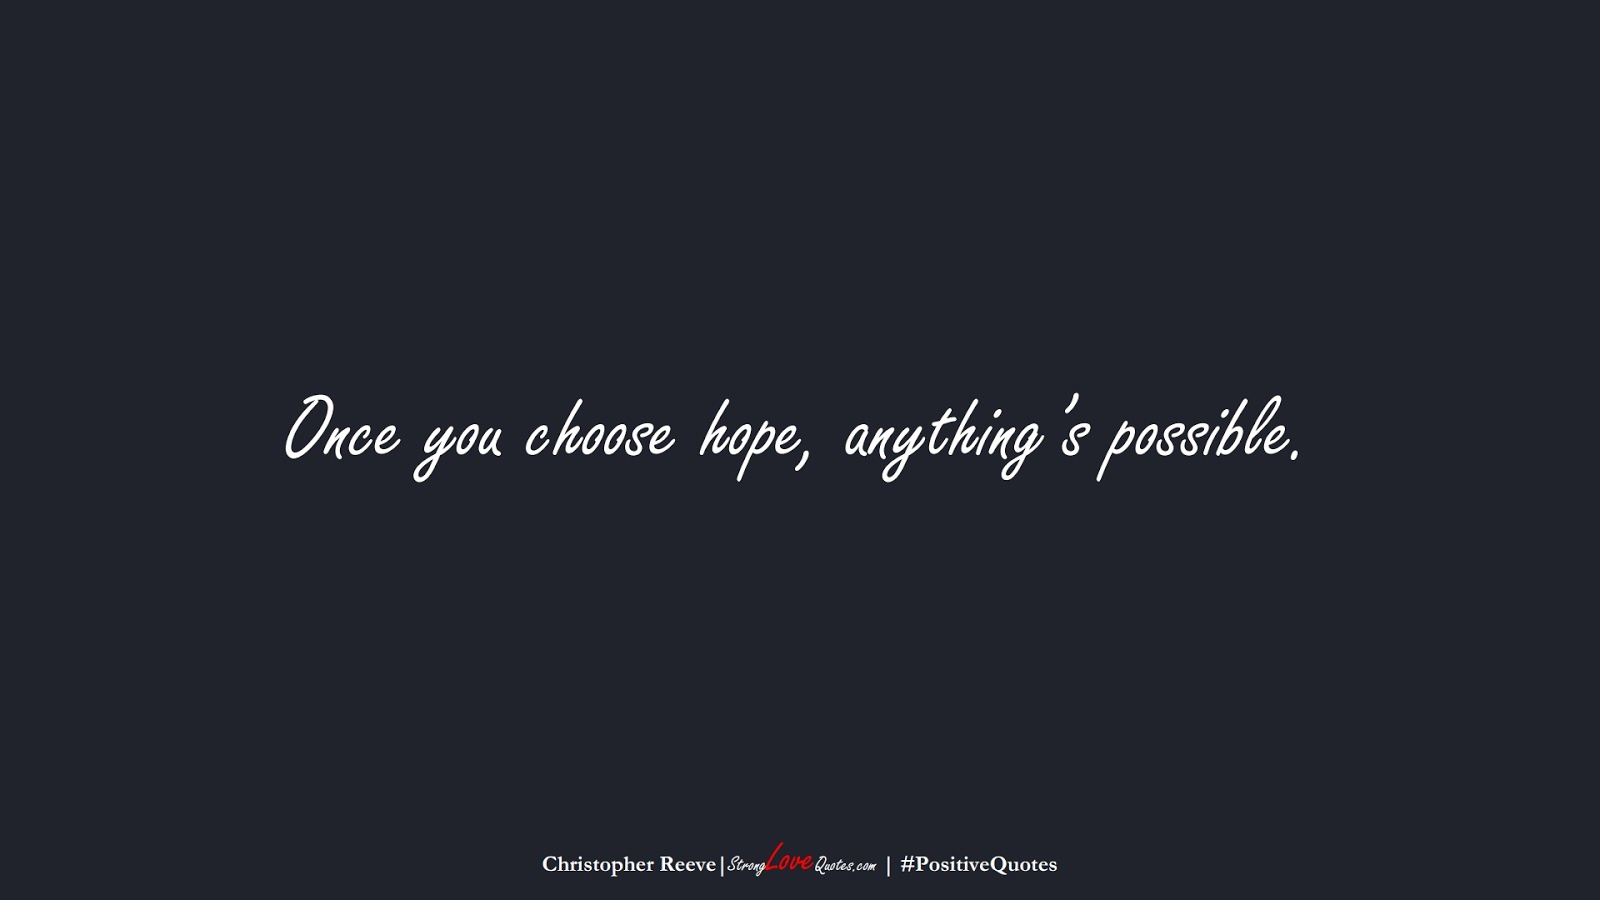 Once you choose hope, anything's possible. (Christopher Reeve);  #PositiveQuotes